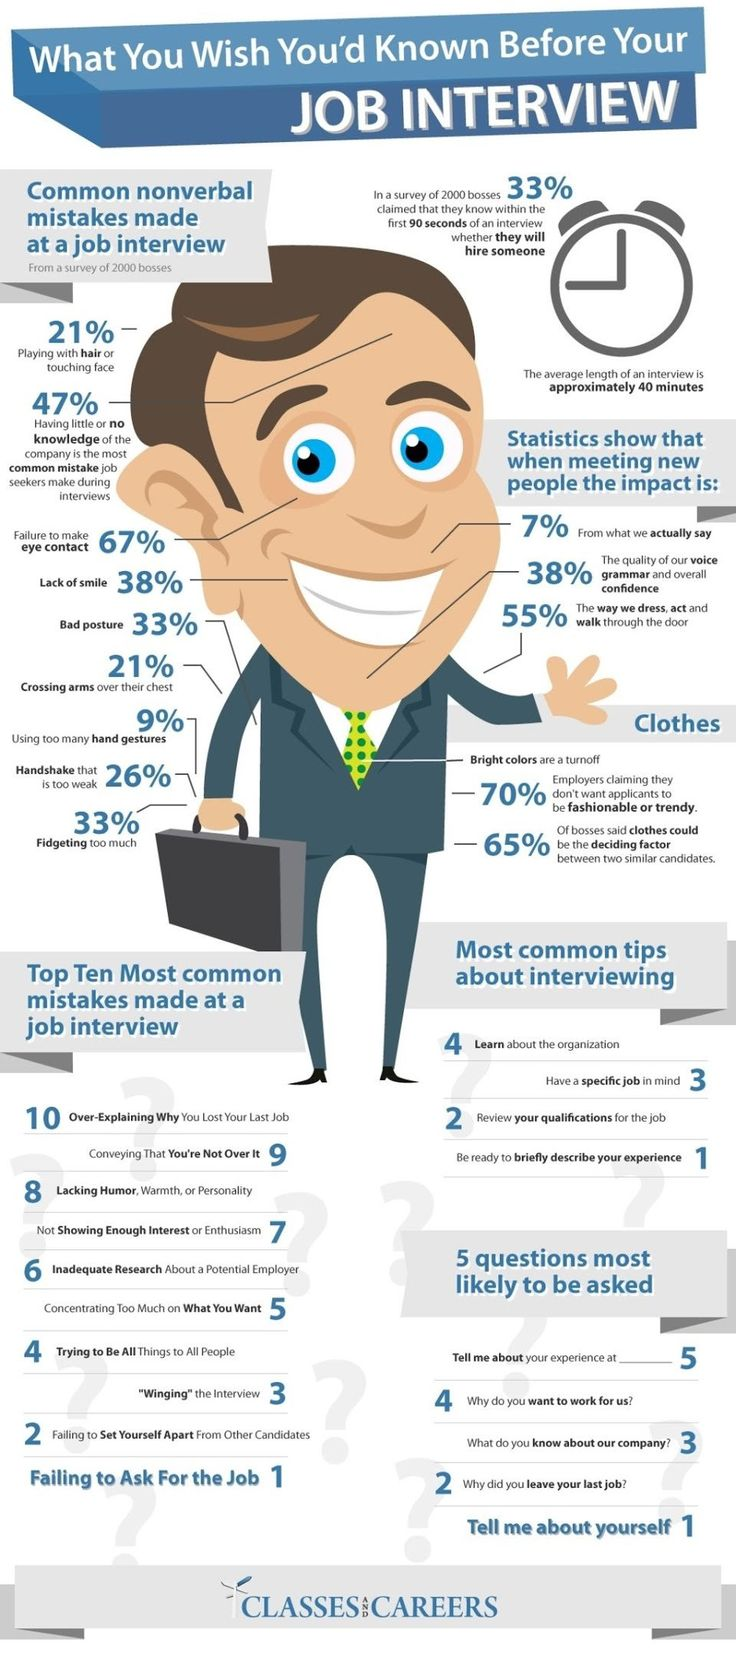 What You Should Know Before Your Job Interview | Infographic | UltraLinx